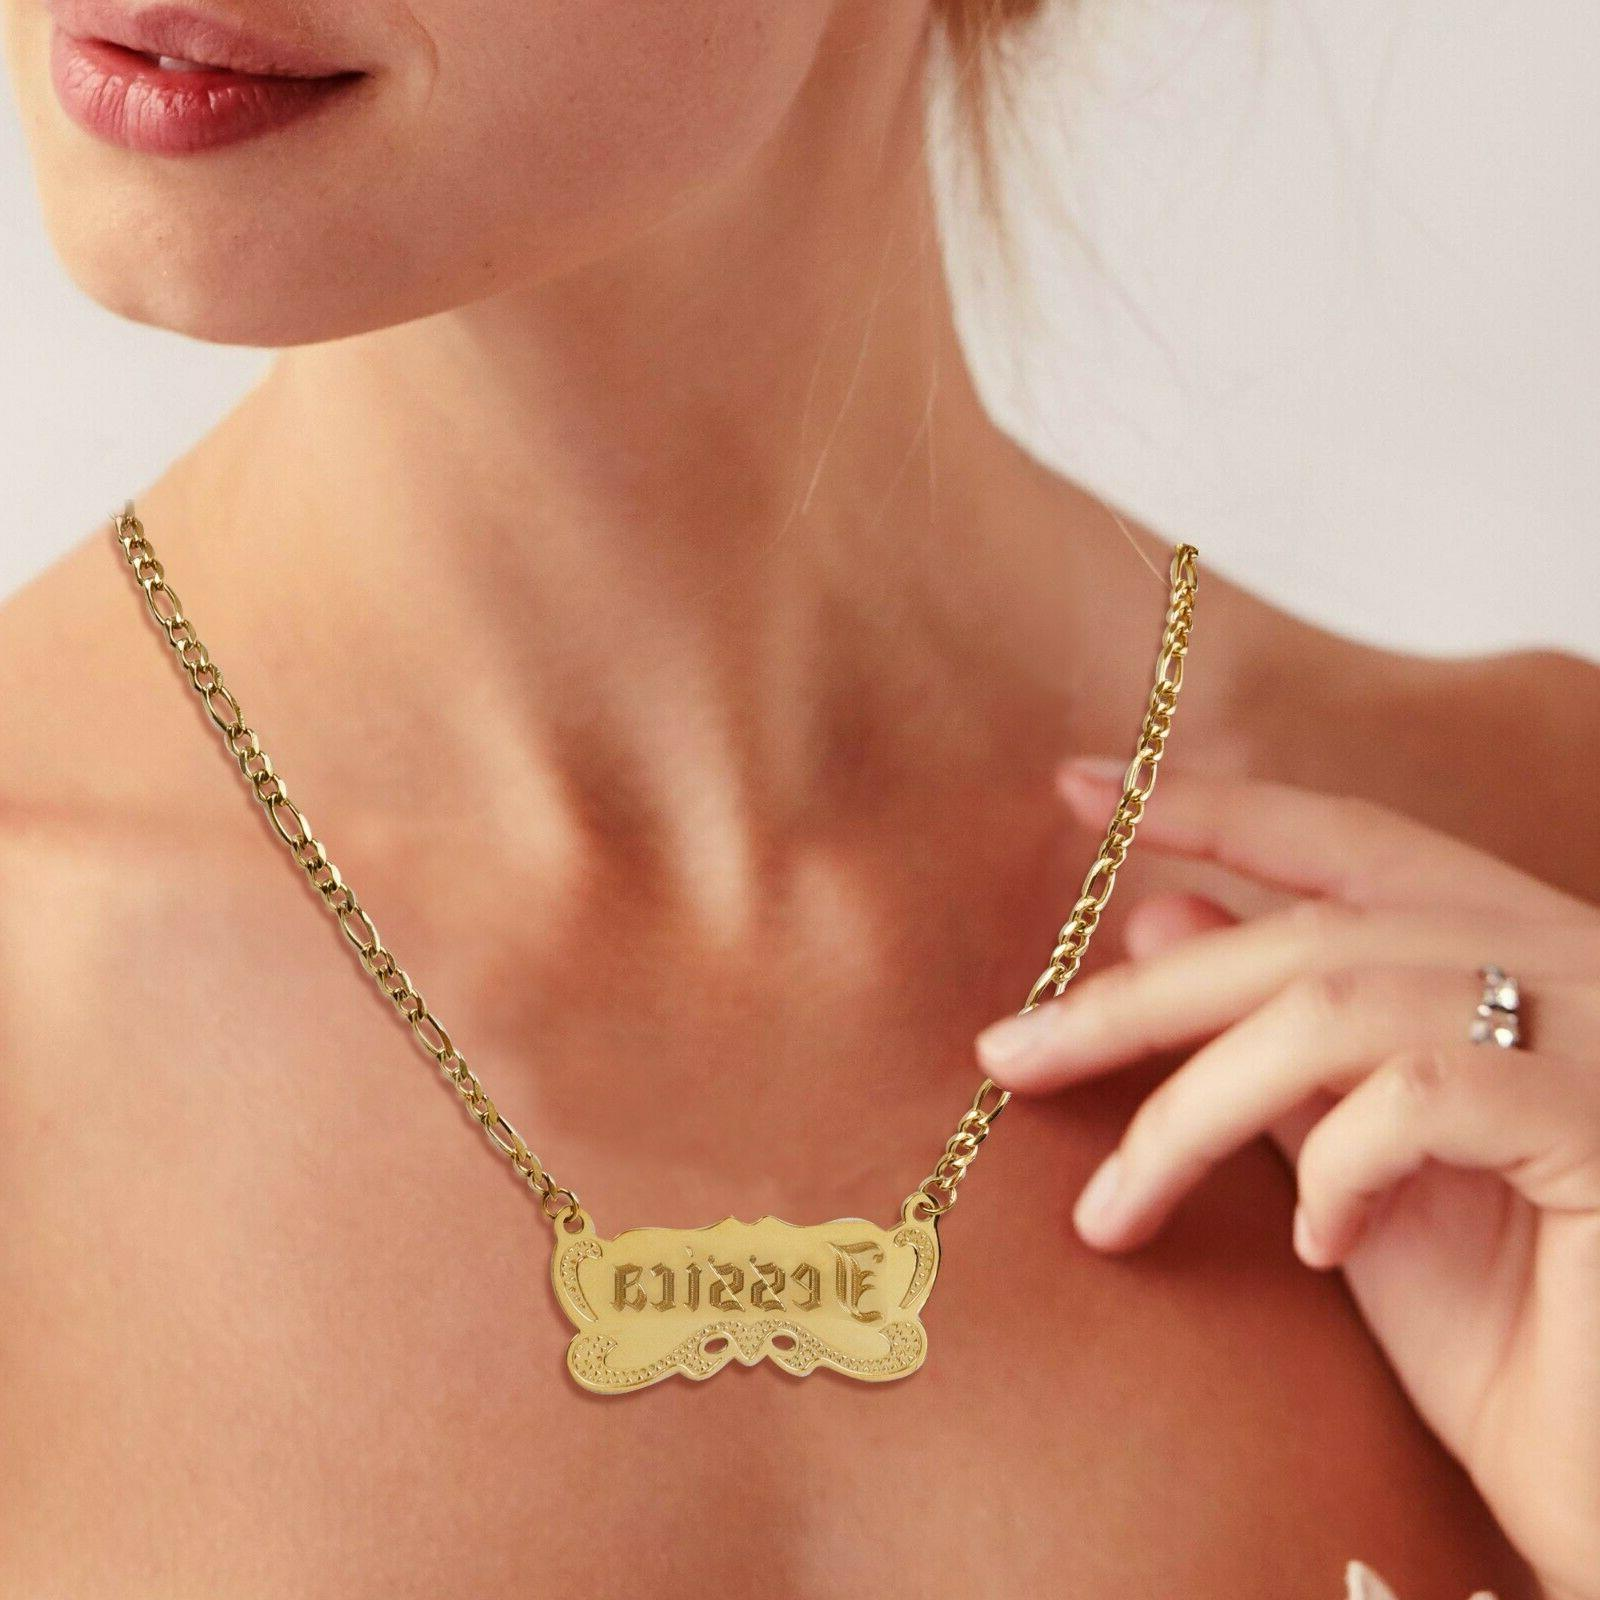 Personalized 14K Chain